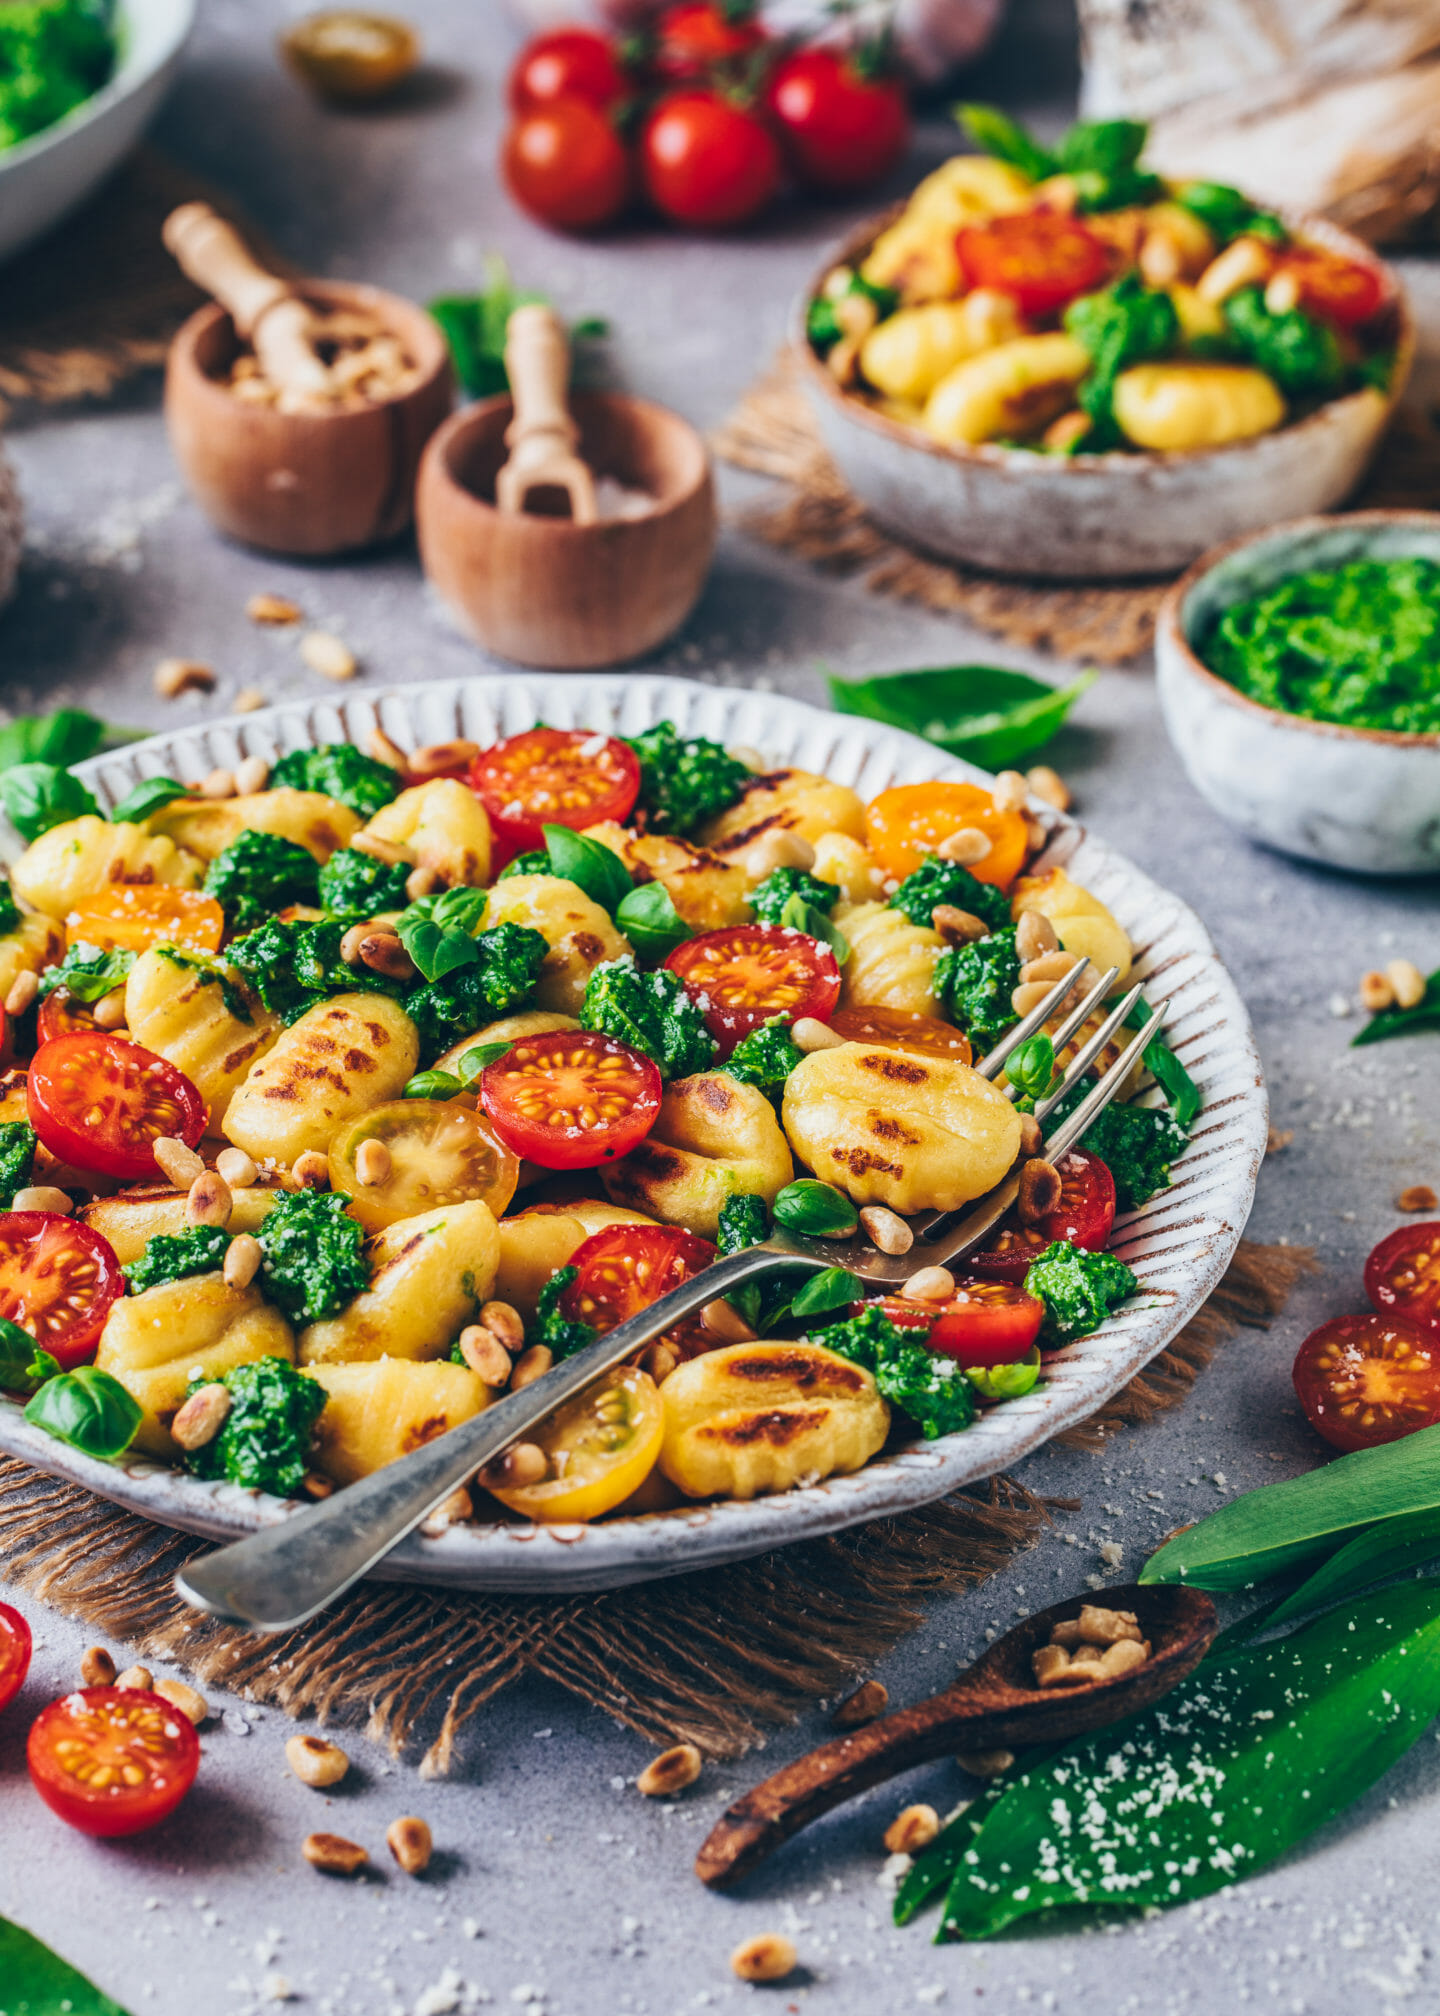 gnocchi with wild garlic, pesto, tomatoes, and basil